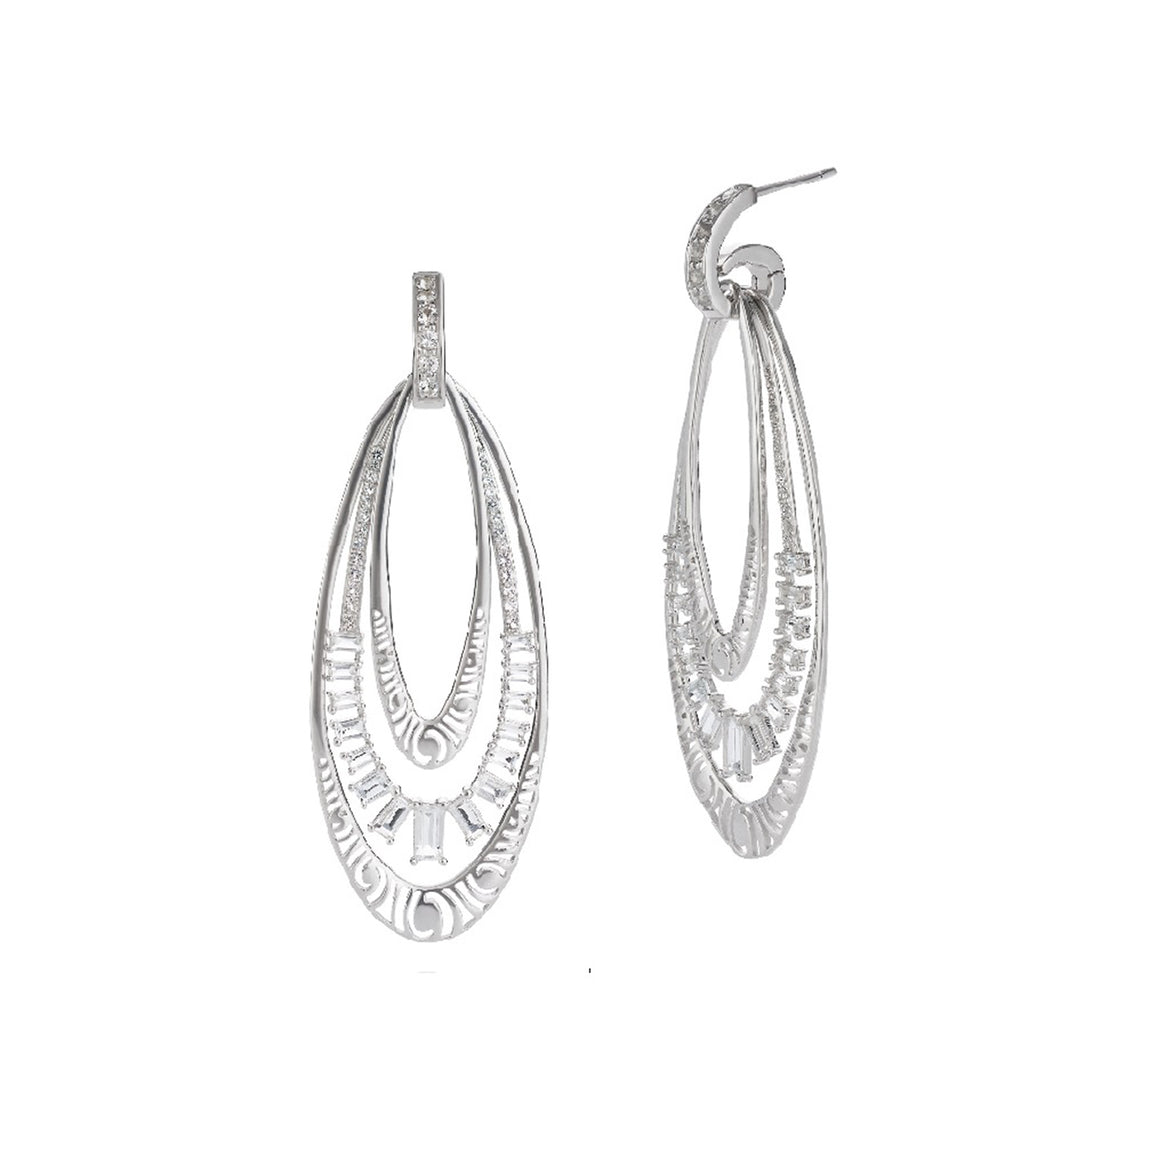 White Topaz Lyra Swirl Earrings by Martha Seely - Talisman Collection Fine Jewelers